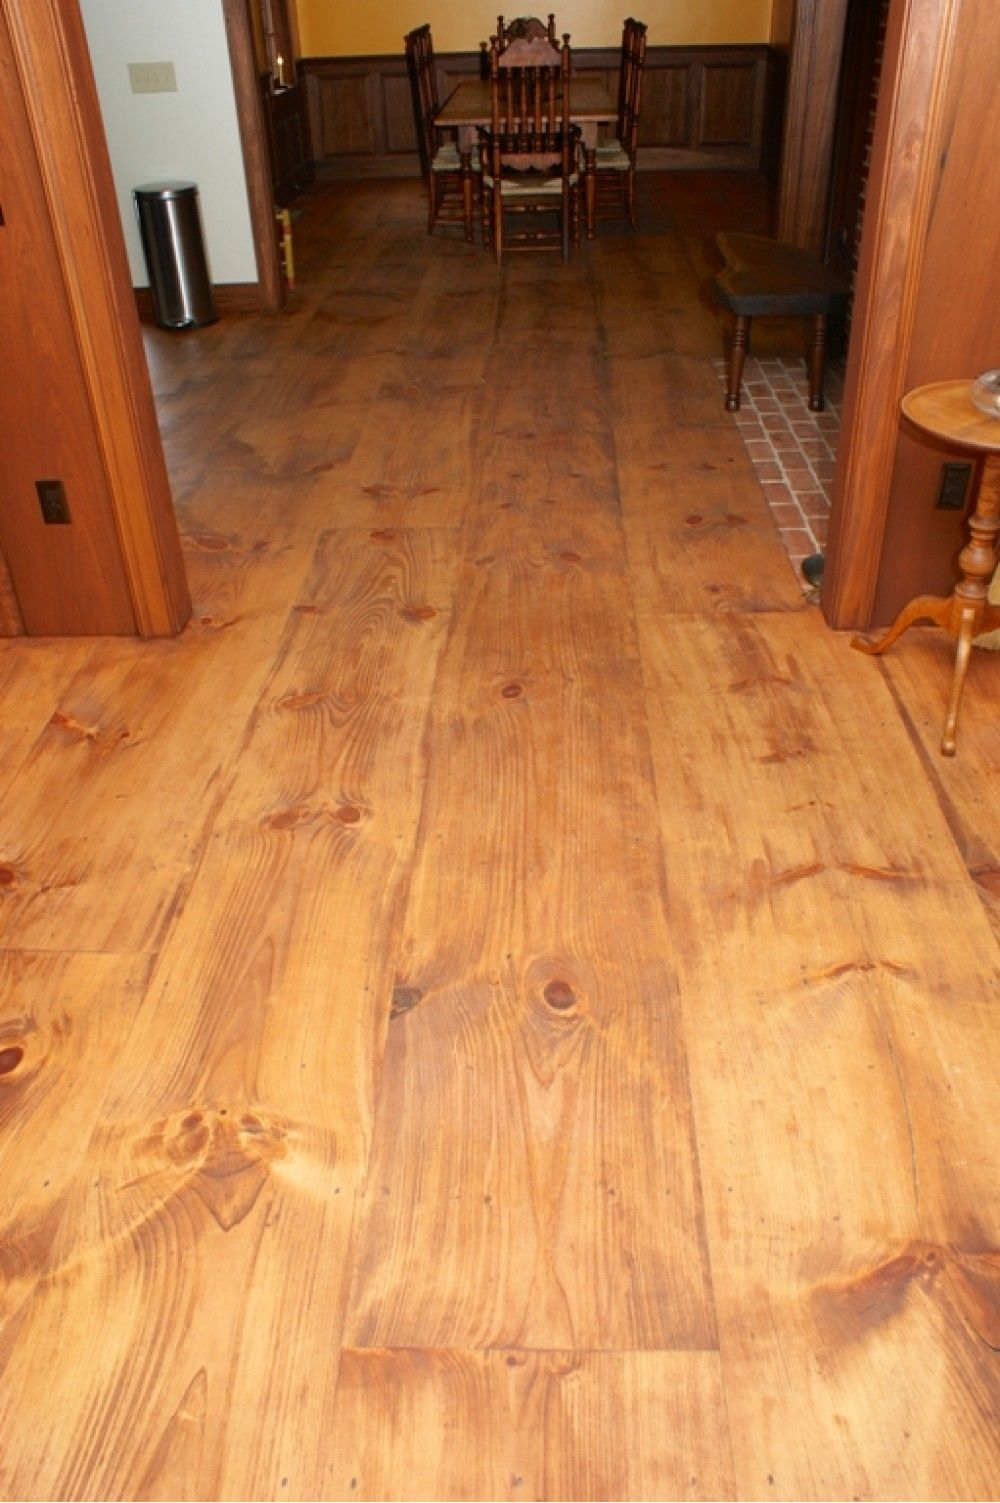 Wide plank white pine pinus strobus eastern white pine is a naturally pale wood but it absorbs stain readily so a wide variety of finish tones from light